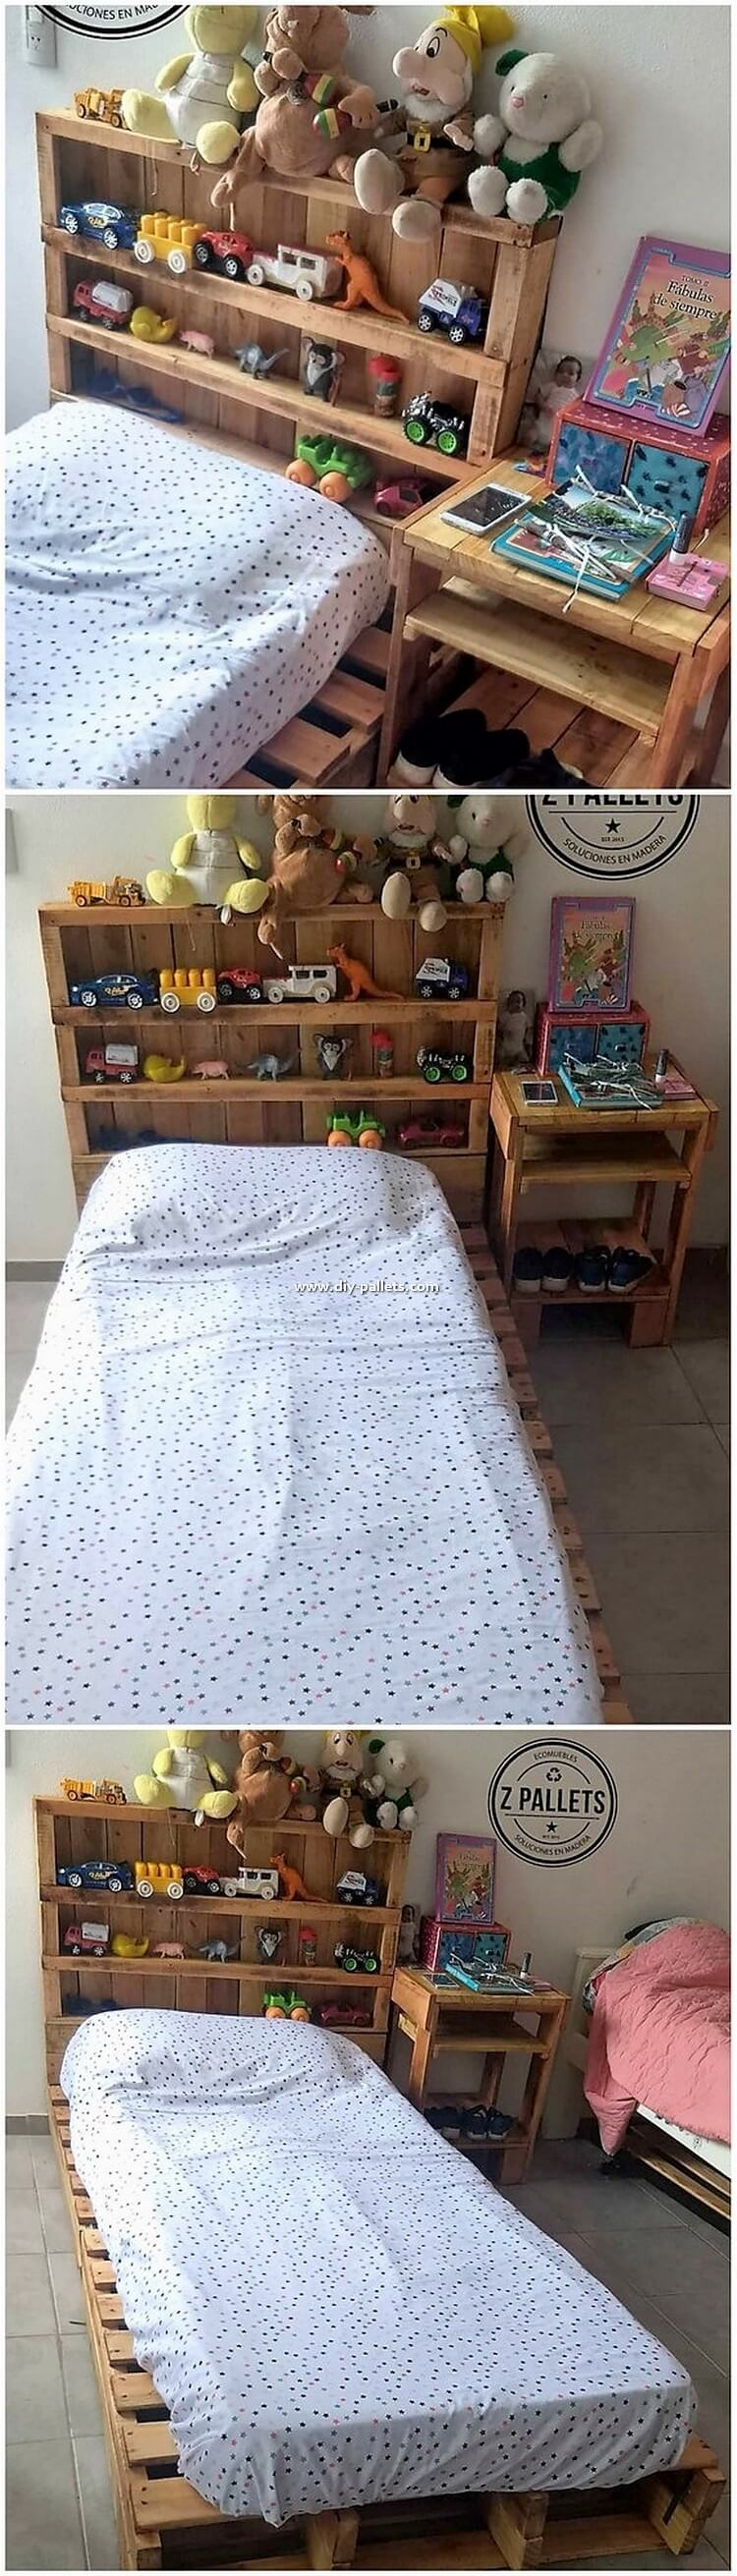 Pallet Bed and Headboard with Kids Toy Storage